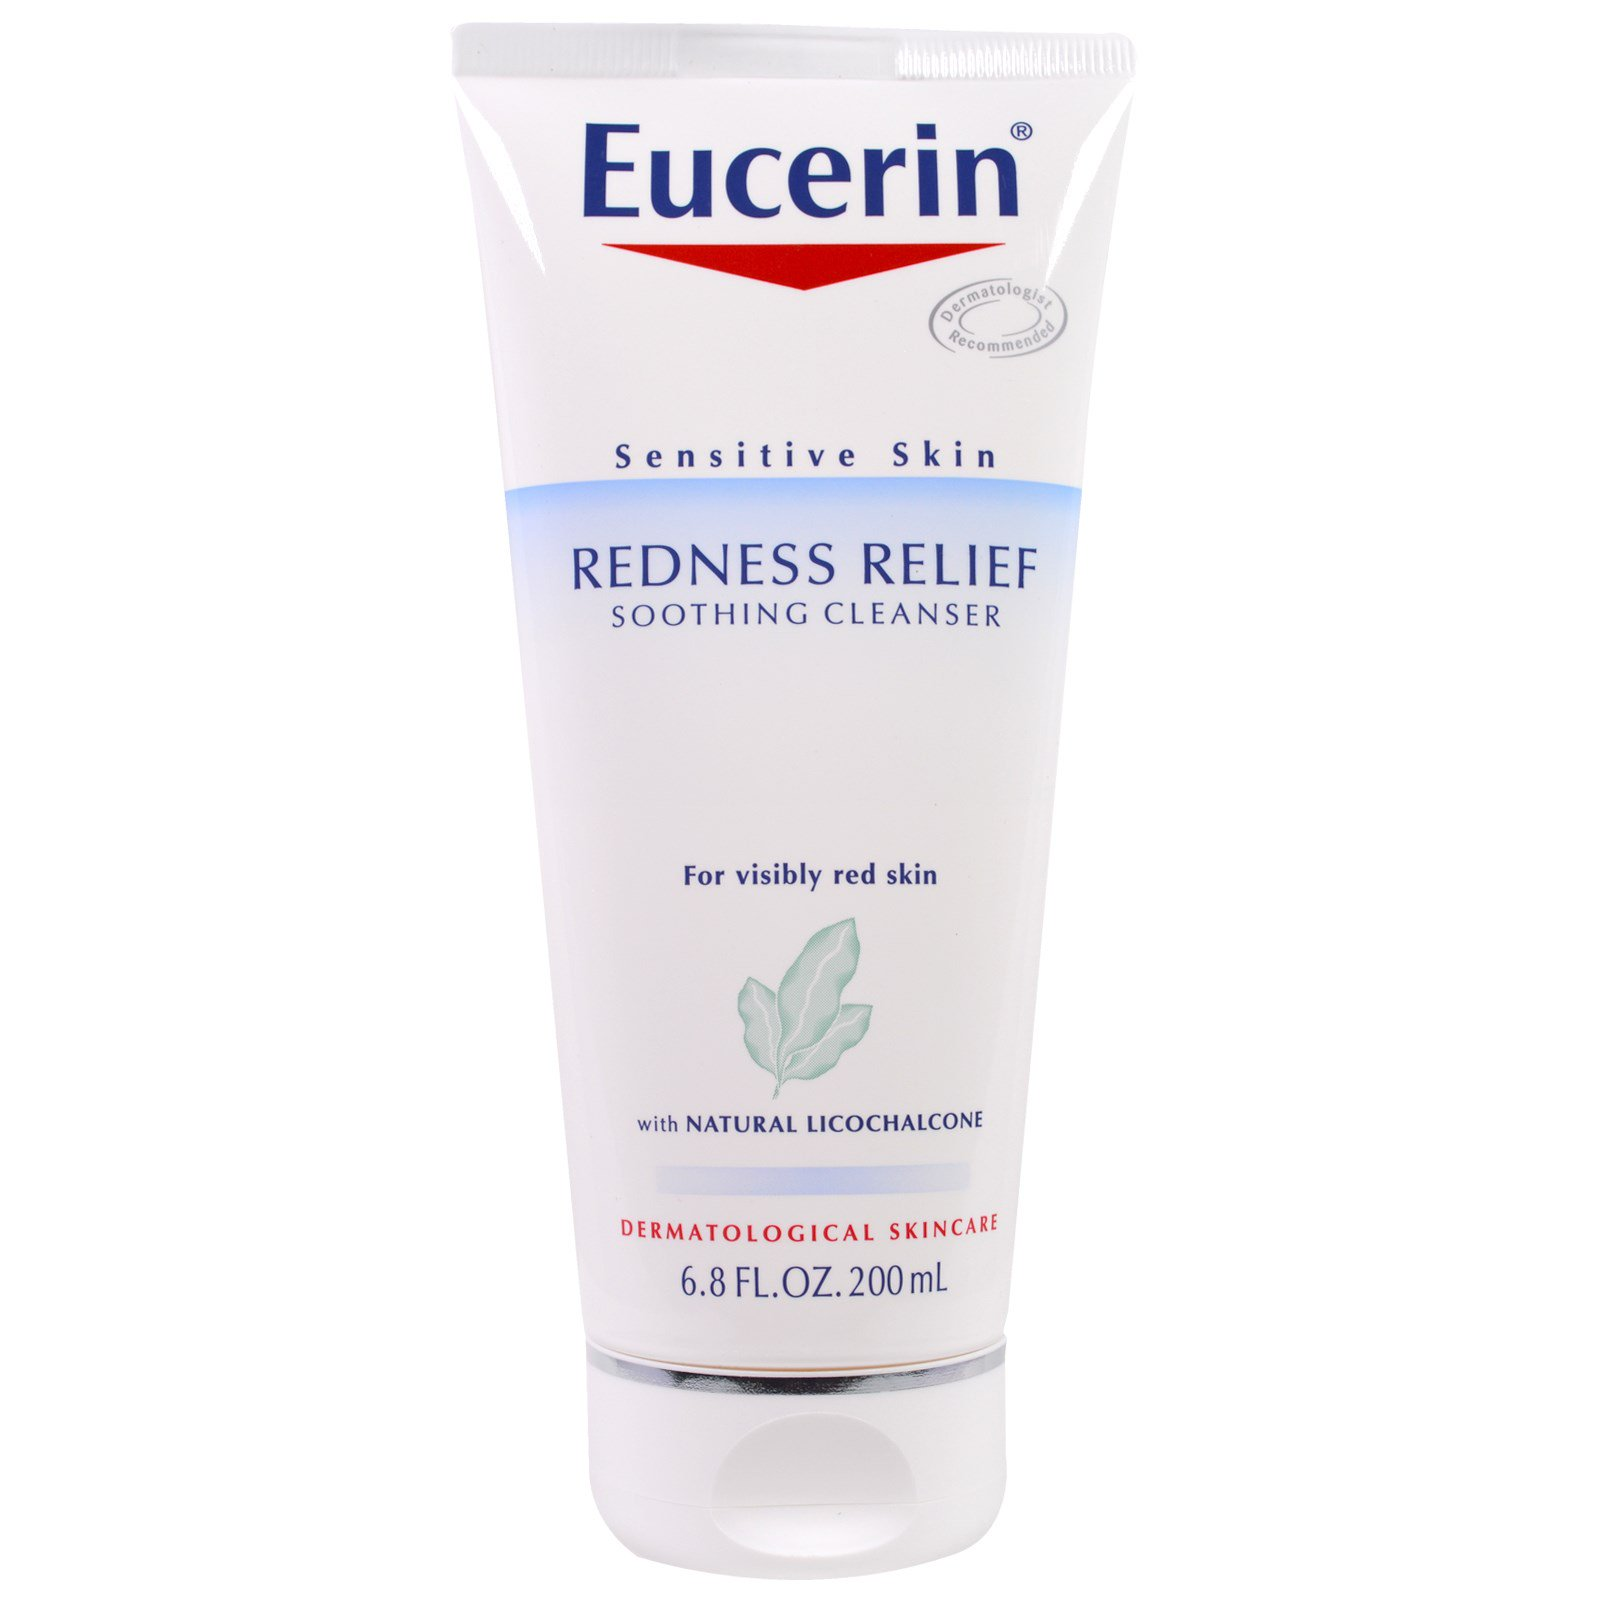 Eucerin Sensitive Skin Redness Relief Soothing Cleanser 6.8 fl. oz. Hanskin O2 Cleansing Oil 6.7oz/200ml New In Box